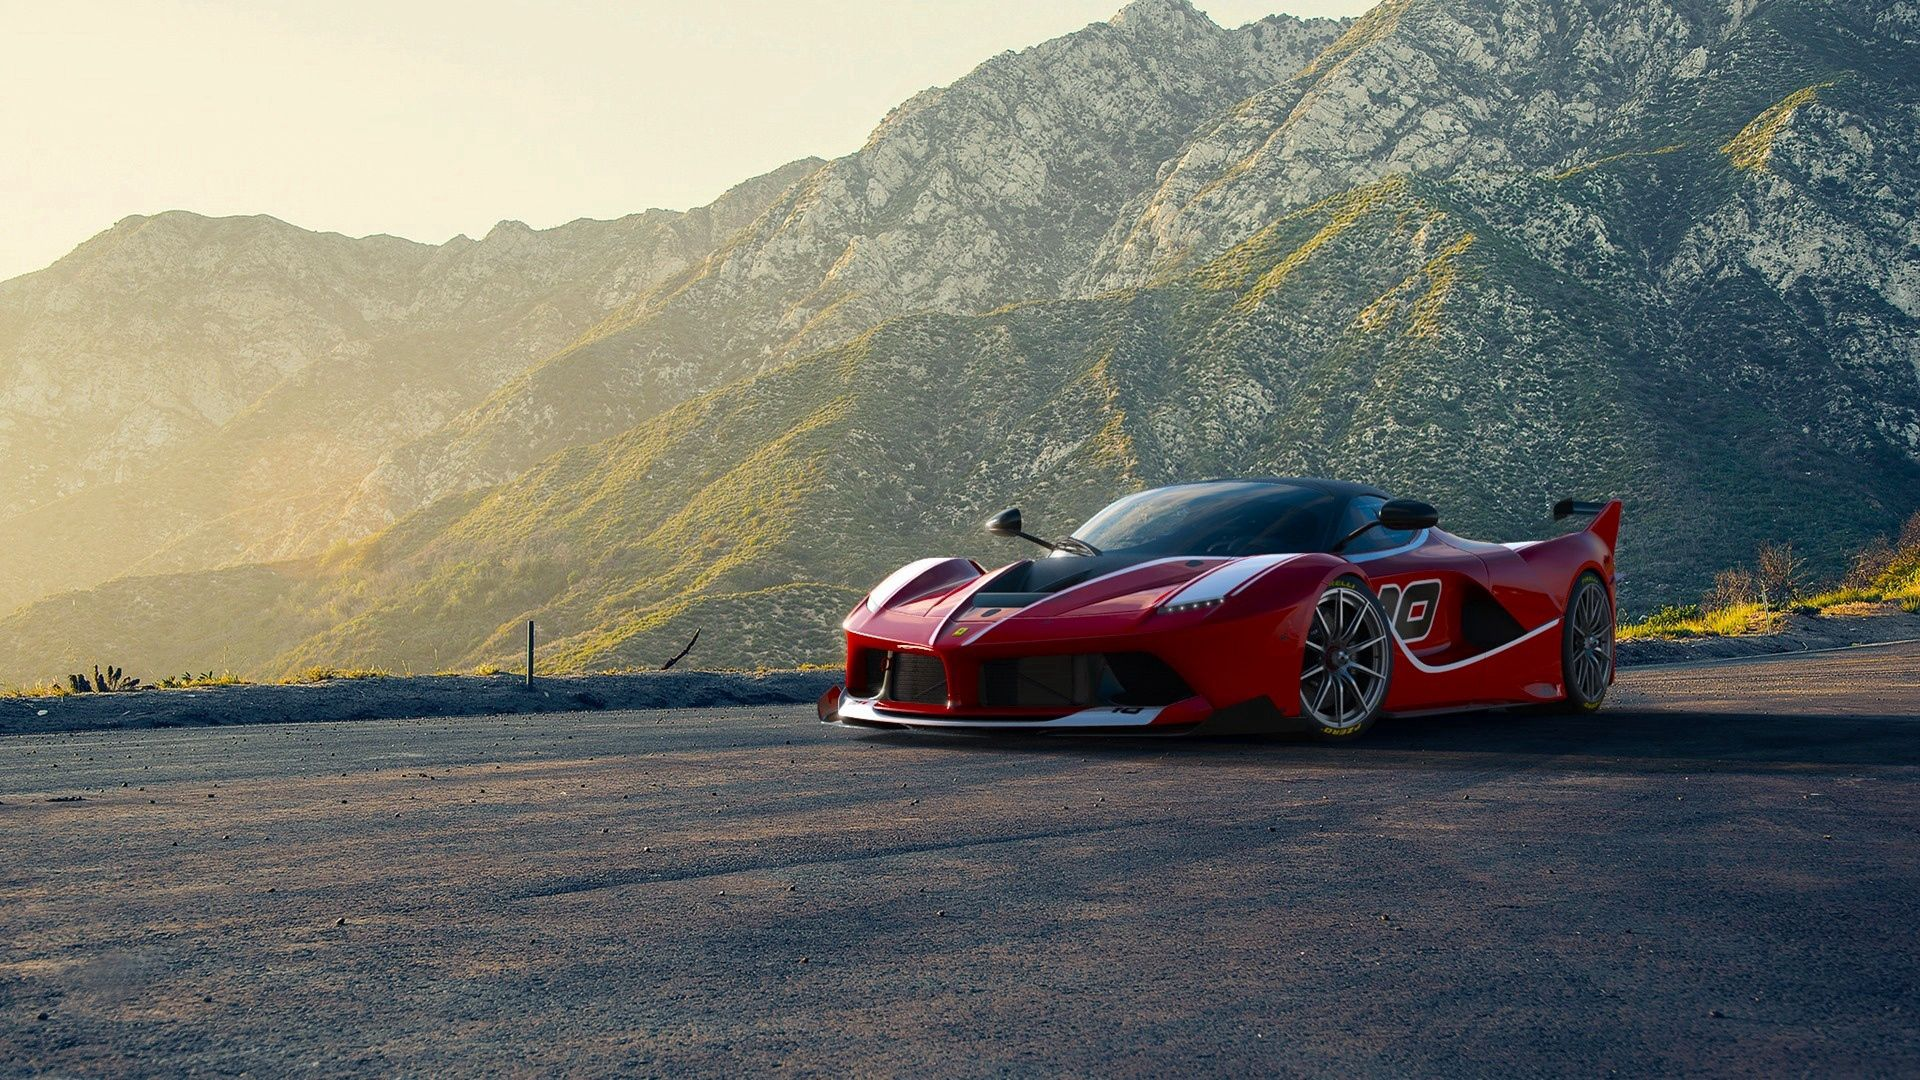 121280 download wallpaper Ferrari, Sports, Supercar, Mountains, Cars, Sports Car screensavers and pictures for free